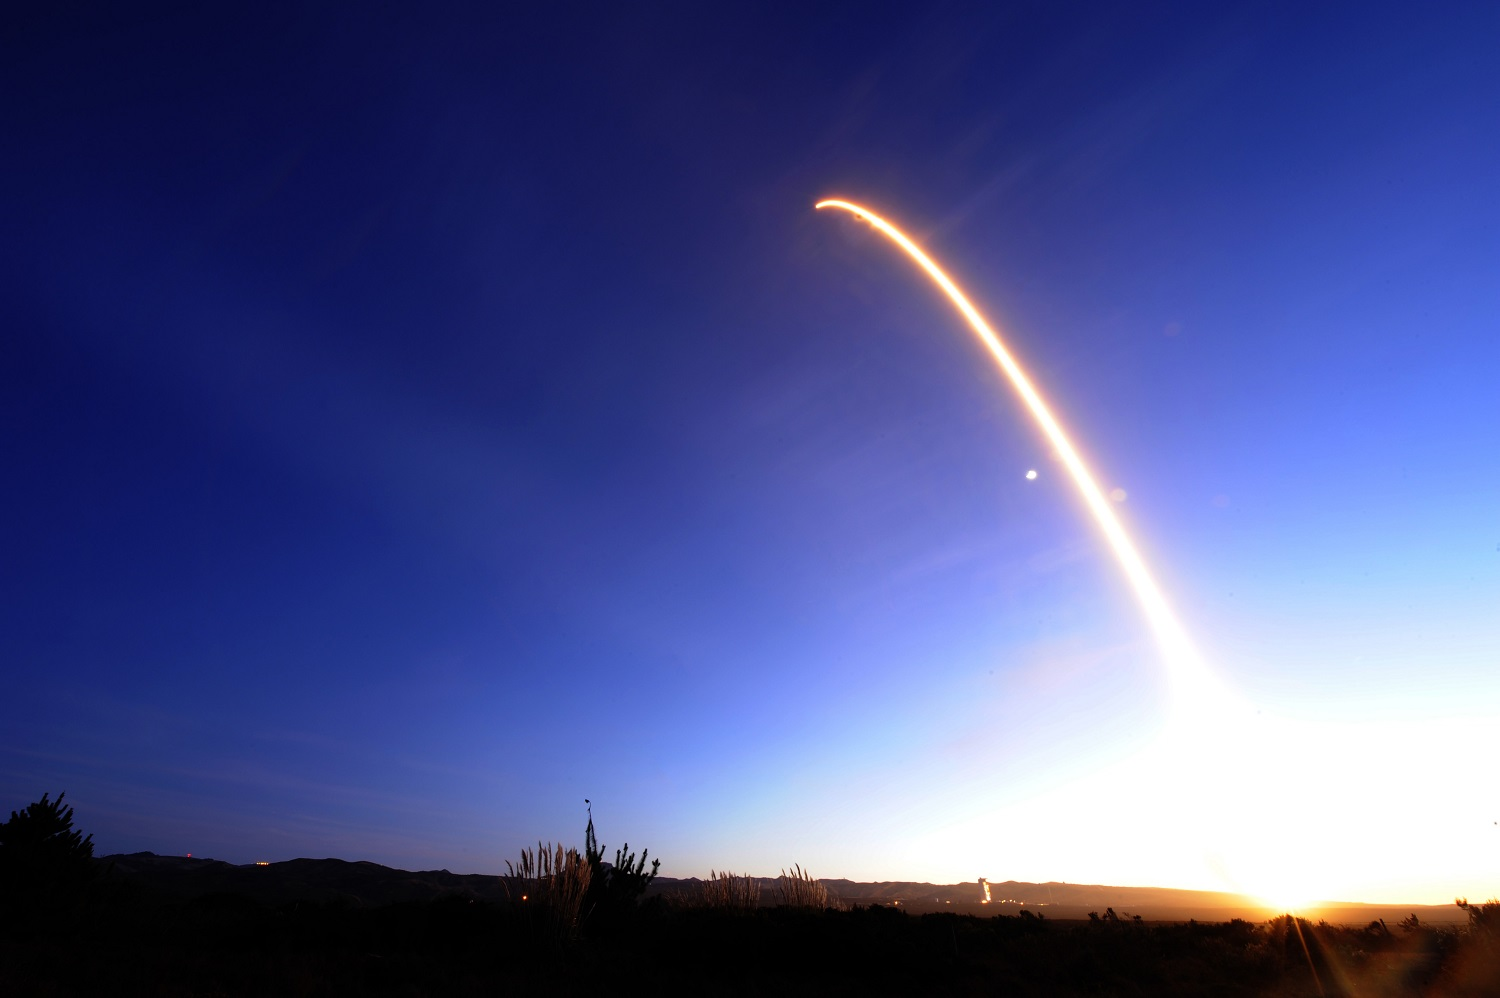 Vandenberg Air Force Base supported the successful launch of the fourth Iridium mission on a SpaceX Falcon 9 rocket on Dec. 22, 2017. (Tech. Sgt. Jim Araos/U.S. Air Force)